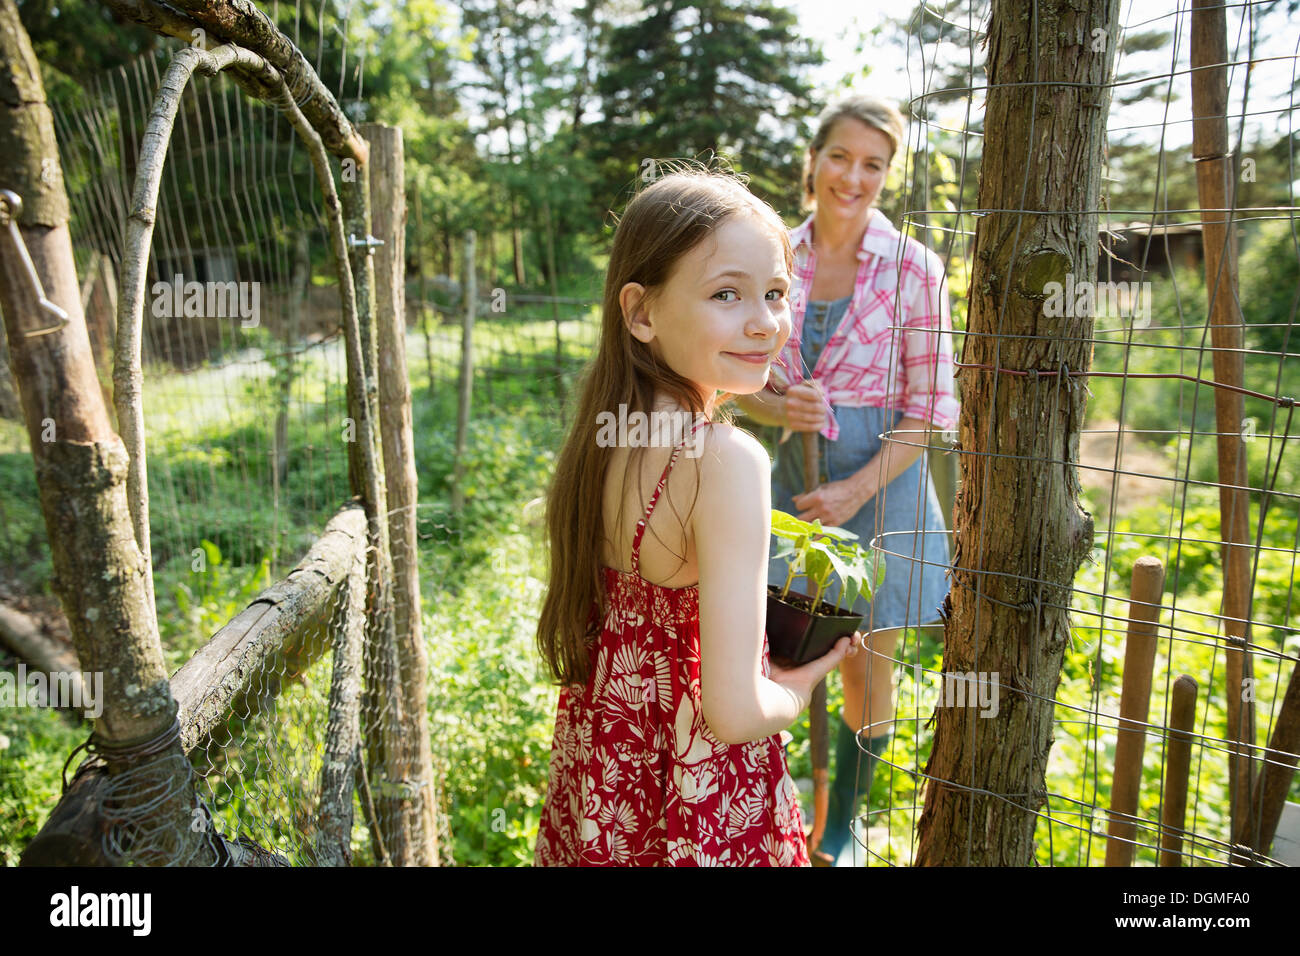 A woman and a child holding a young green plant in a pot. - Stock Image